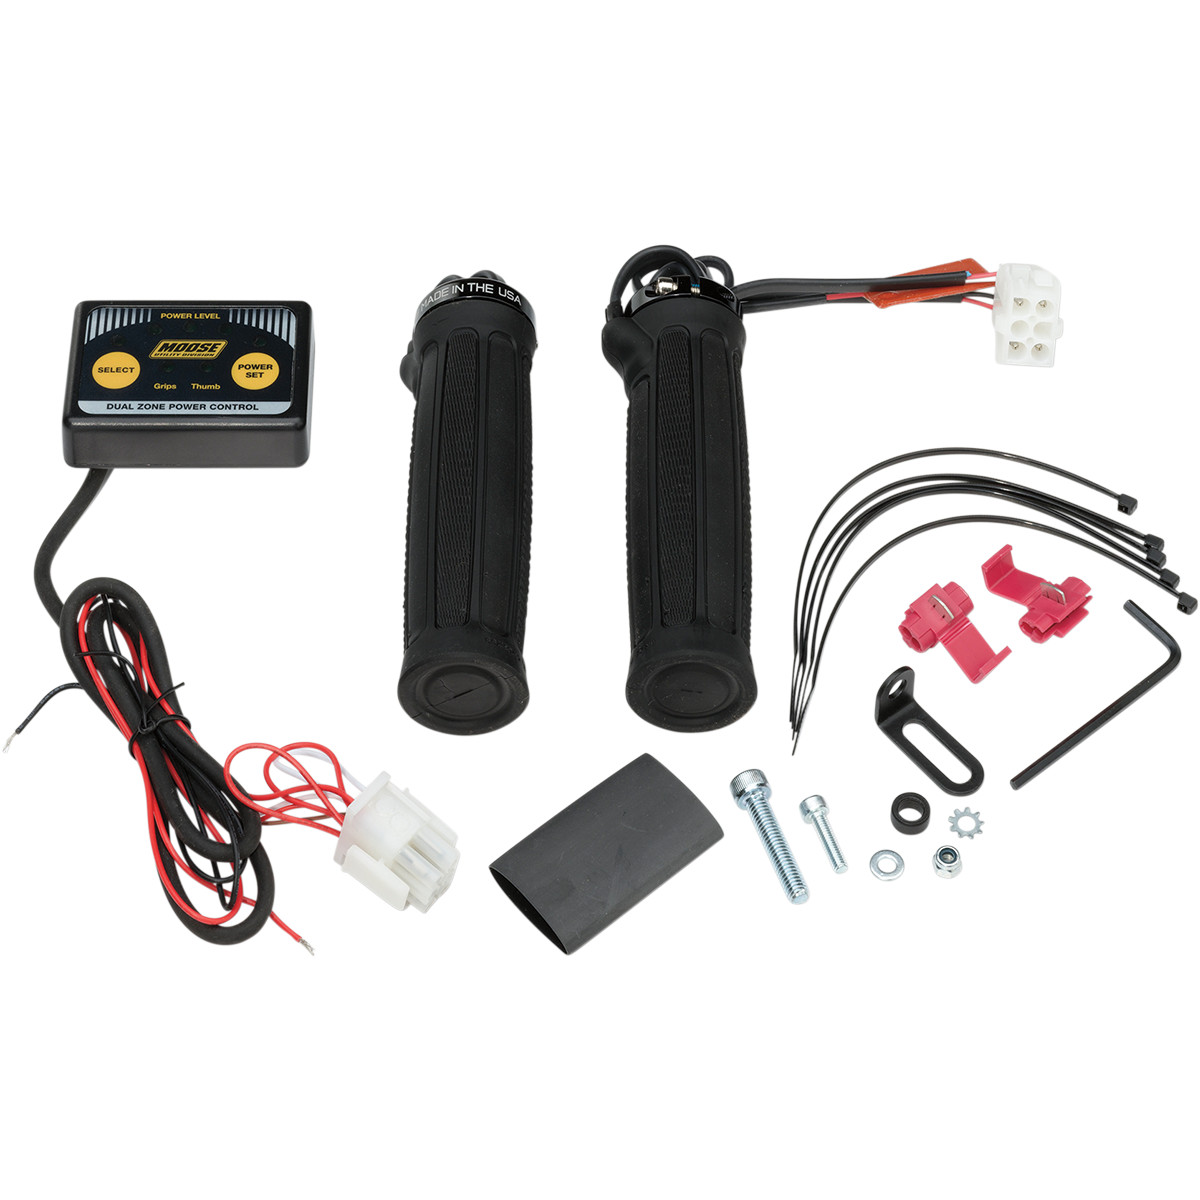 clamp-on dual zone heated grip kit [0631-0154]